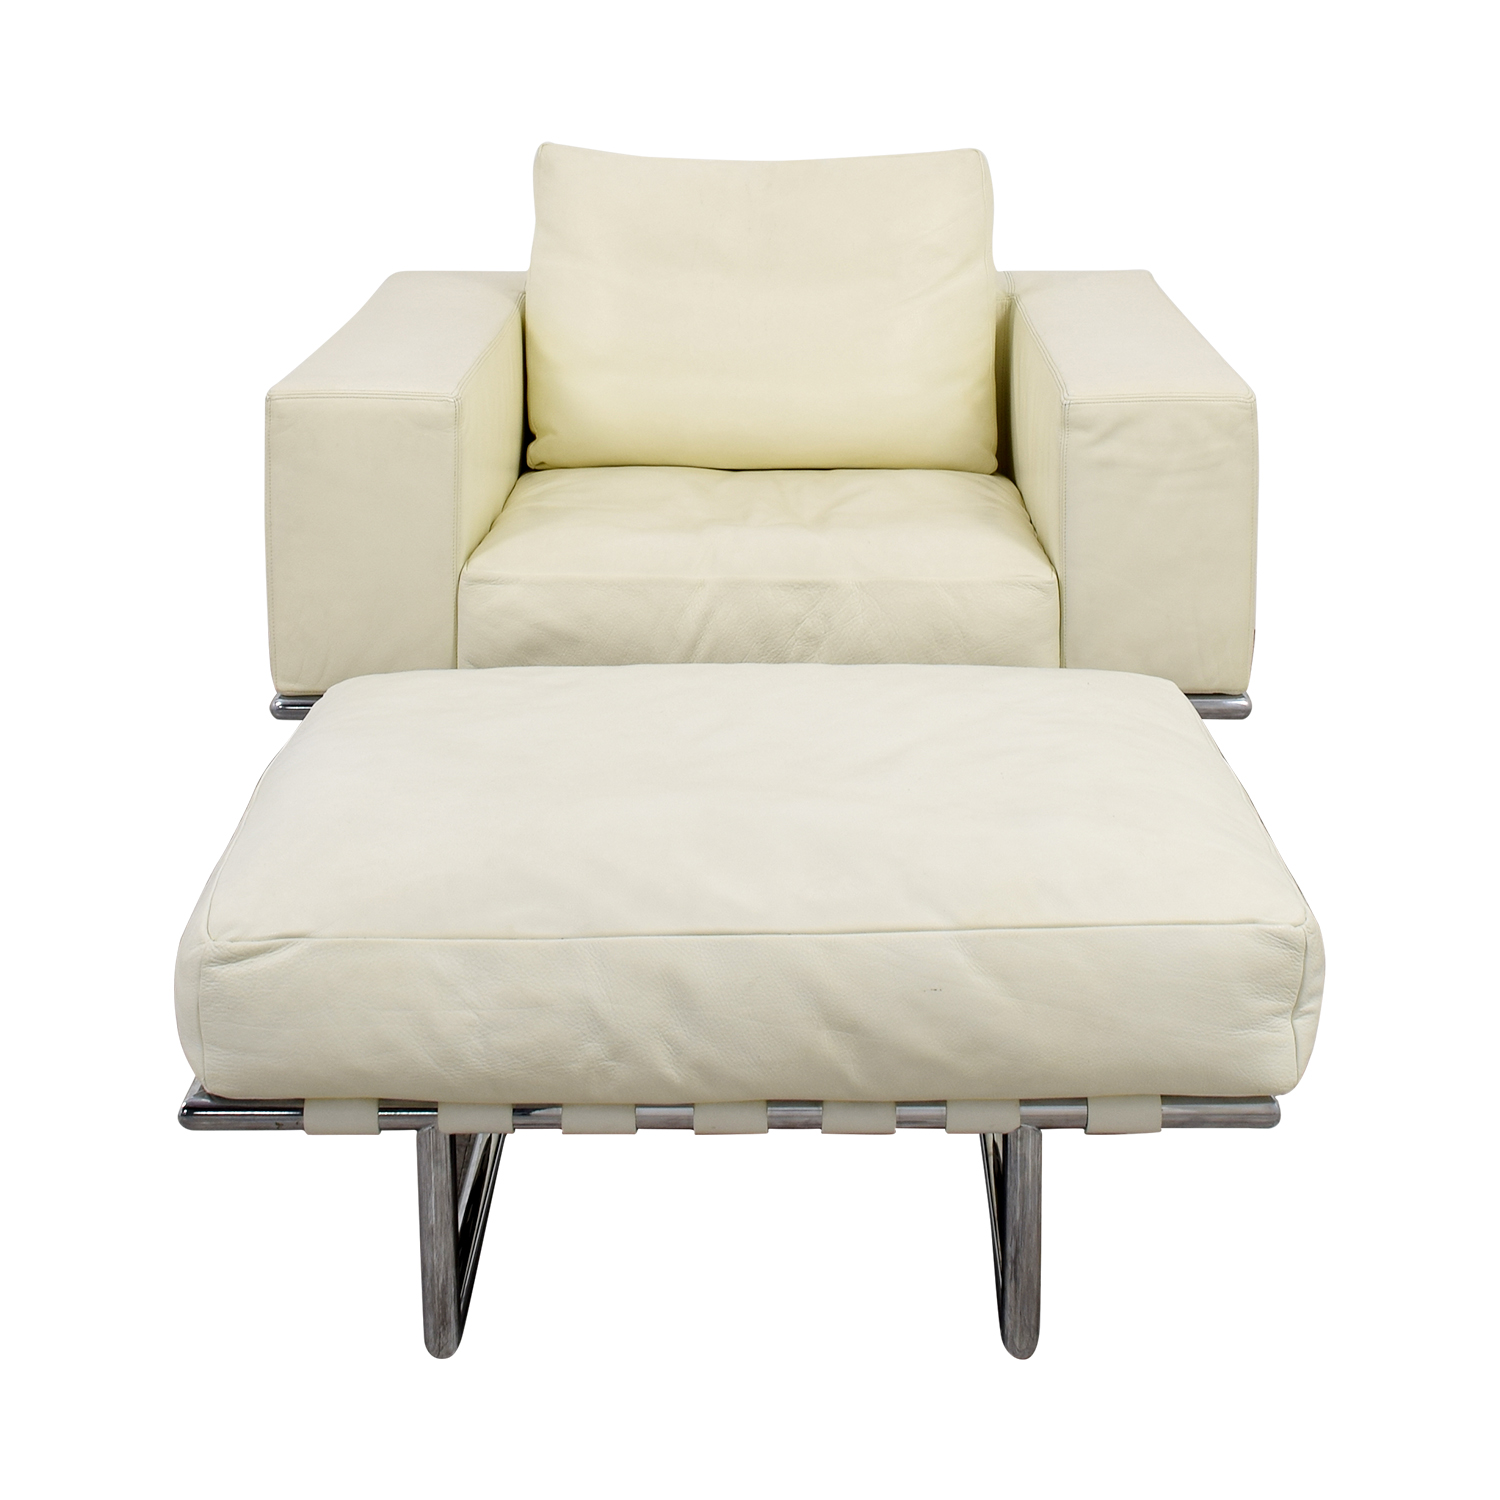 Moura Starr Italian White Leather Chair with Ottoman Moura Starr